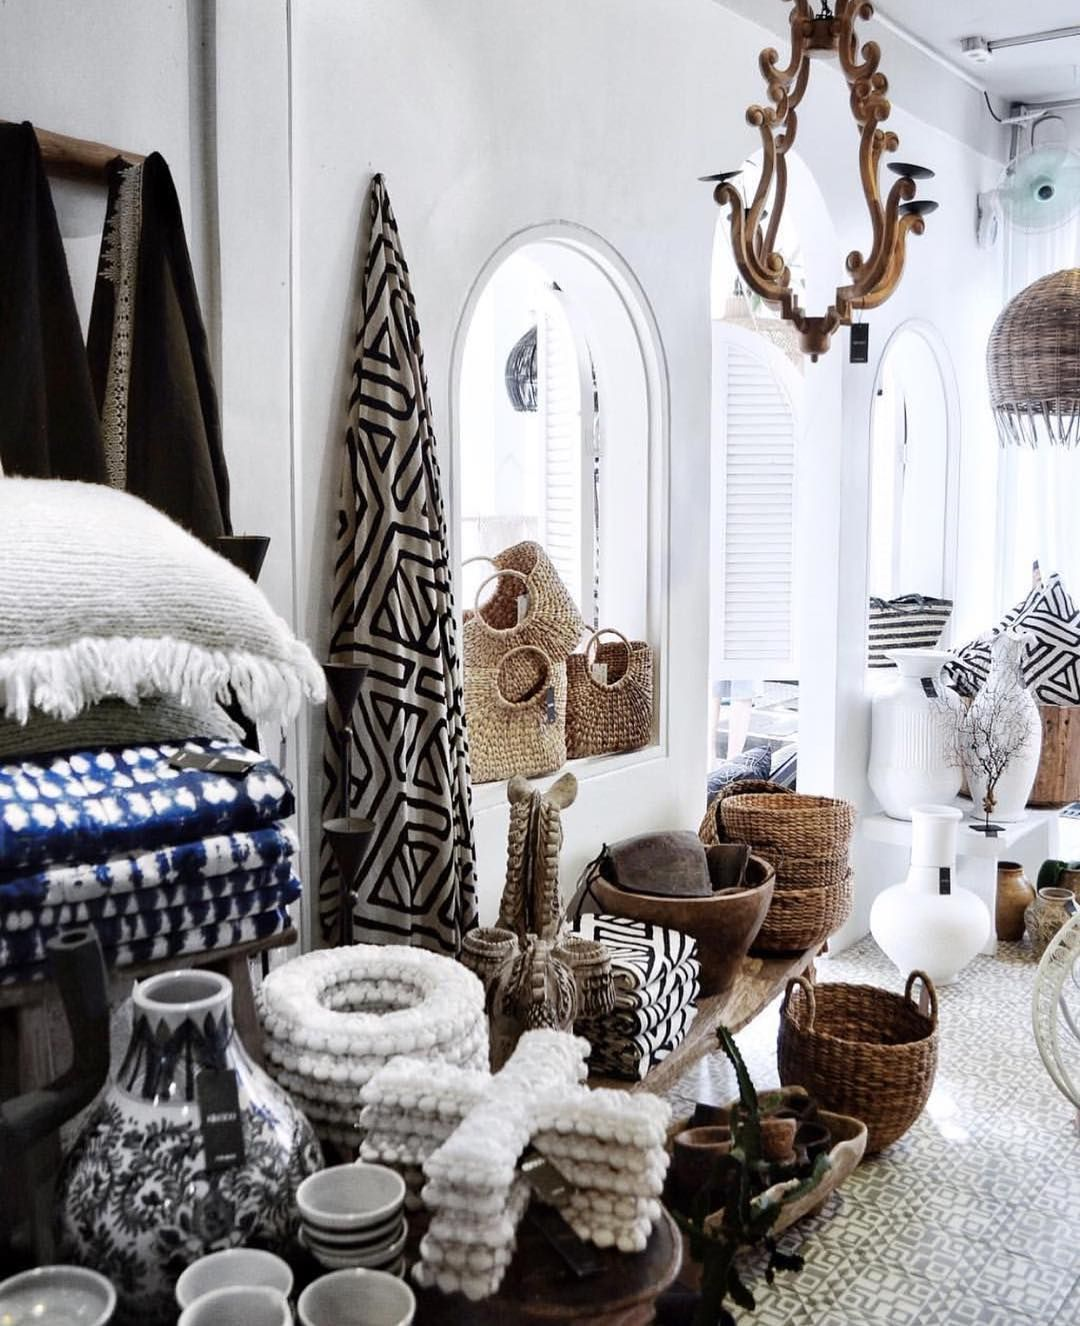 Kim Soo Home - a world famous textile and decor shop located in